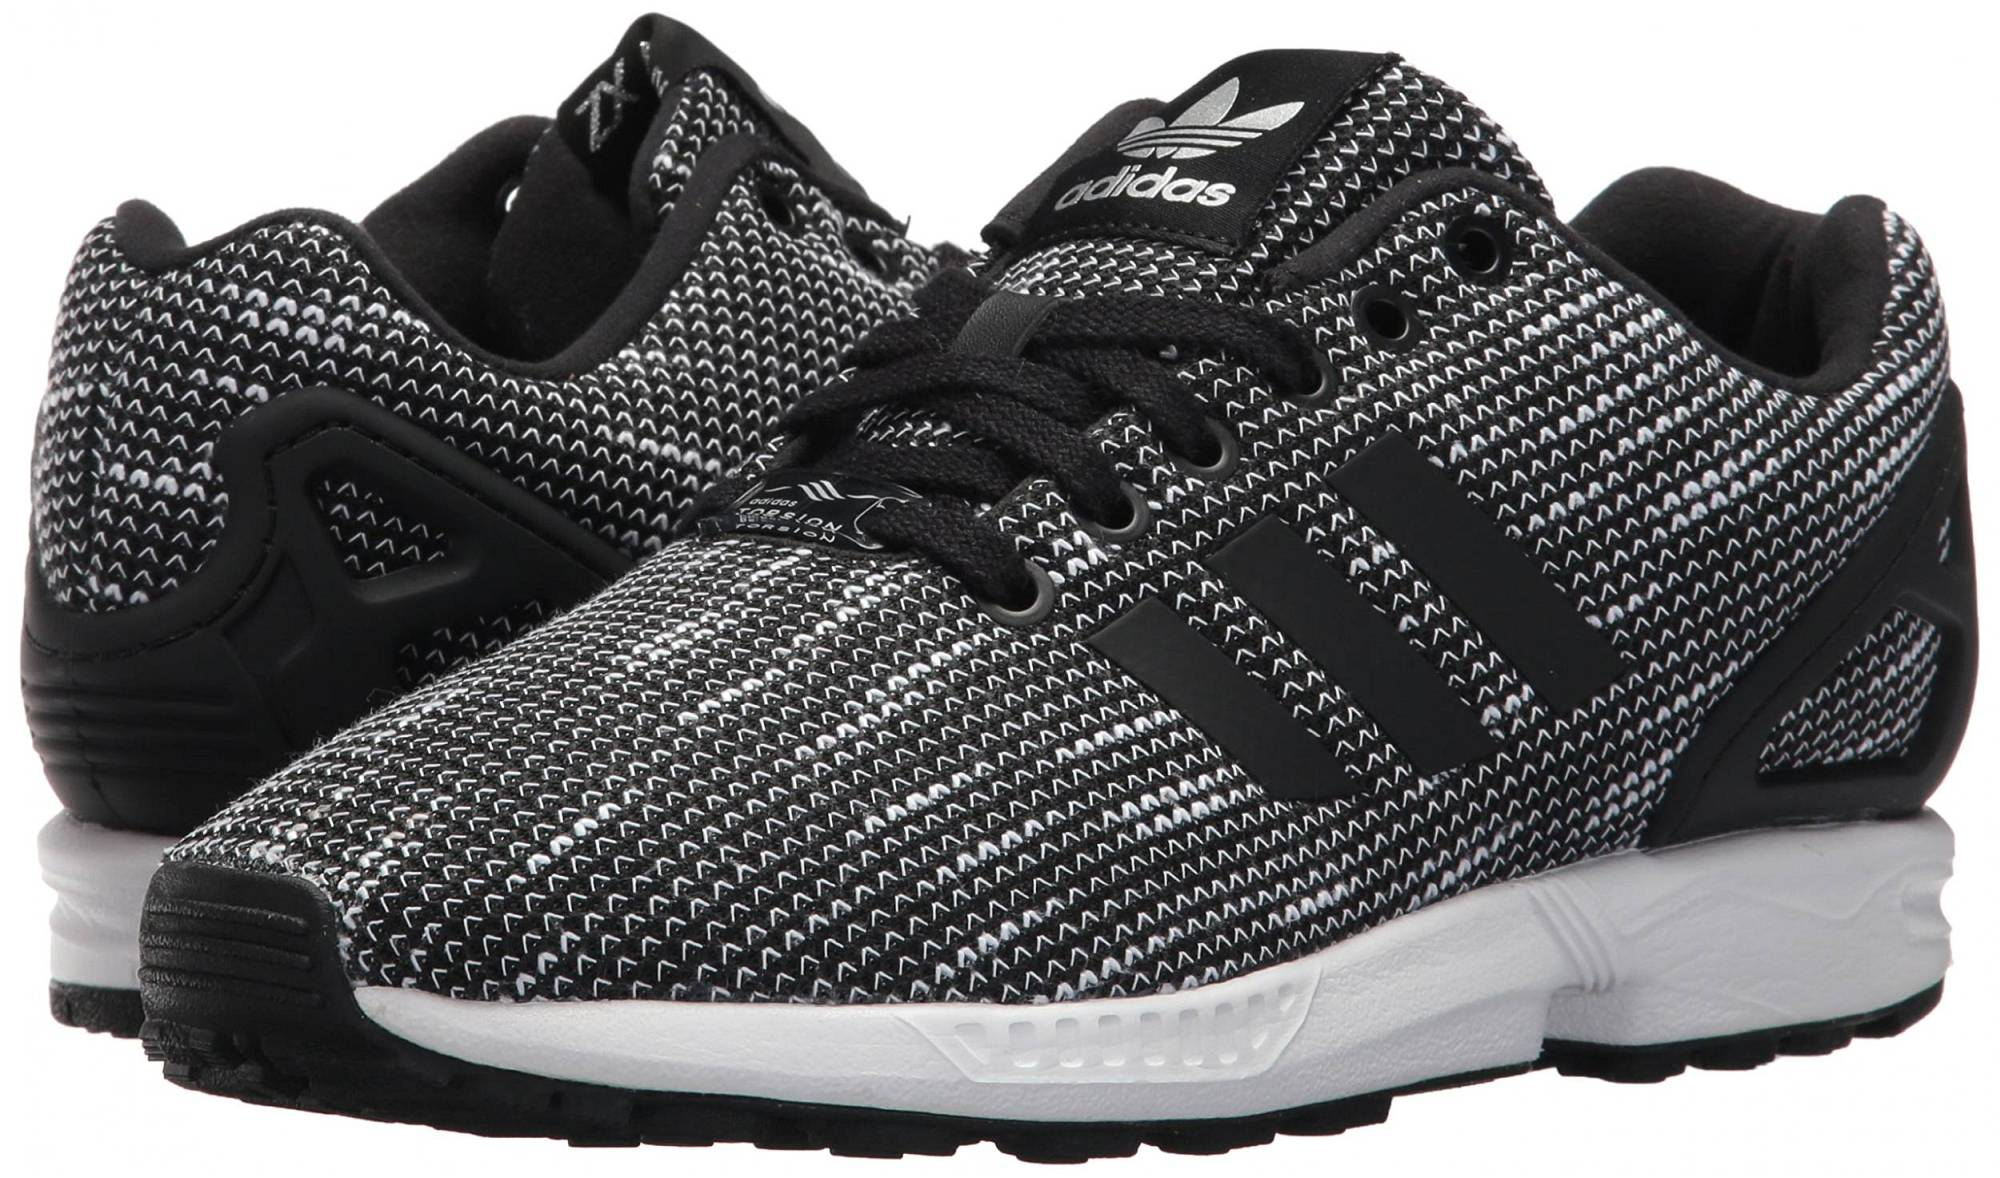 empeñar guión estimular  Adidas ZX Flux – Shoes Reviews & Reasons To Buy